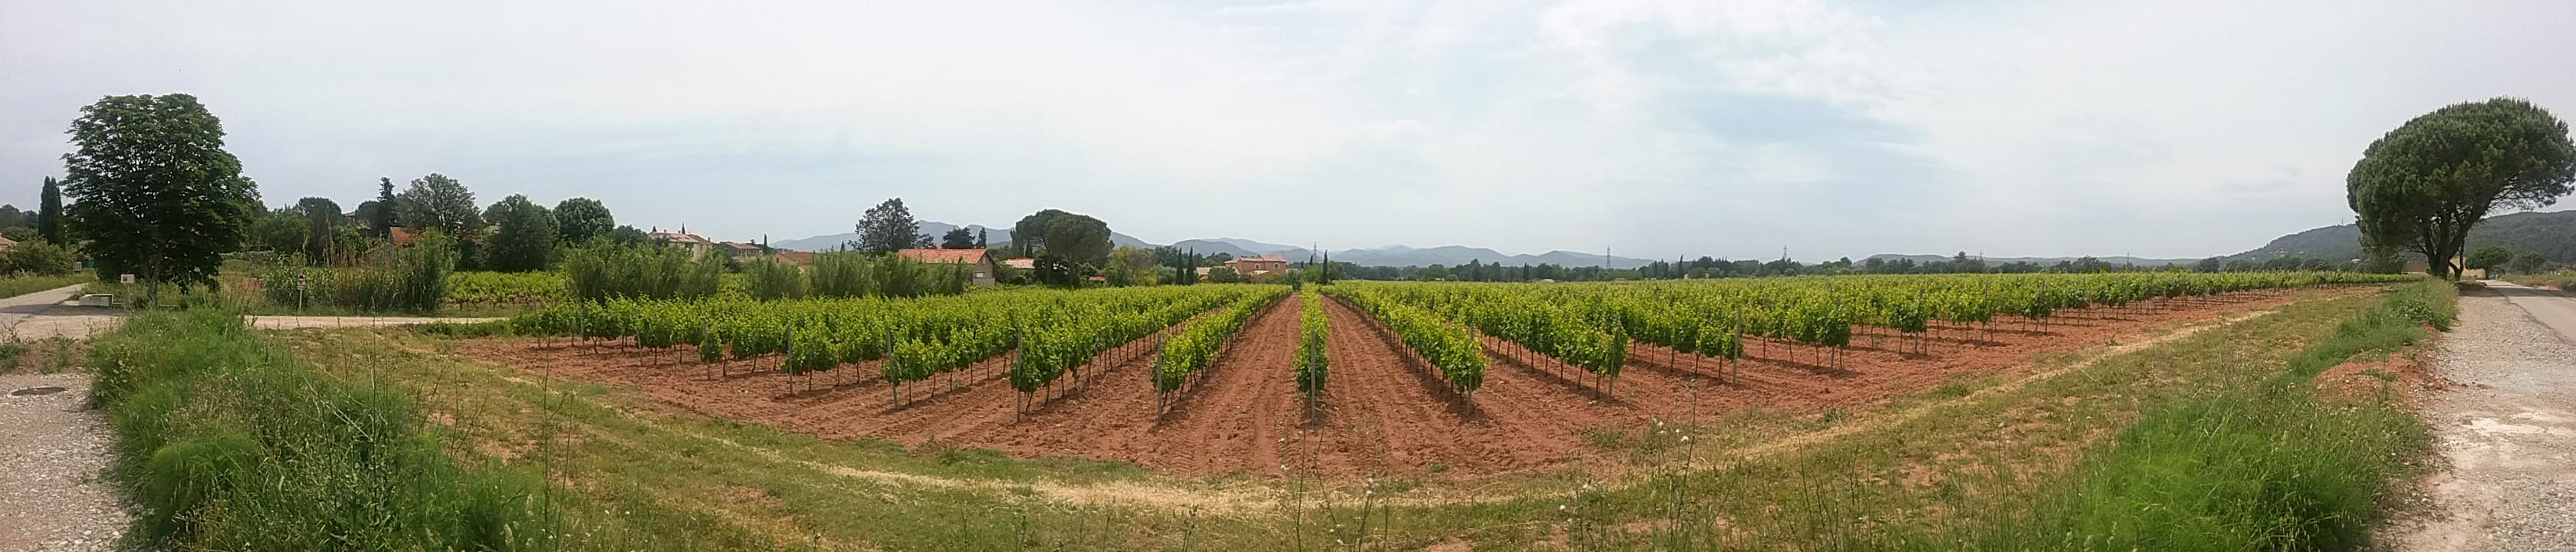 2018 05 Provence PanoramaTablet 011